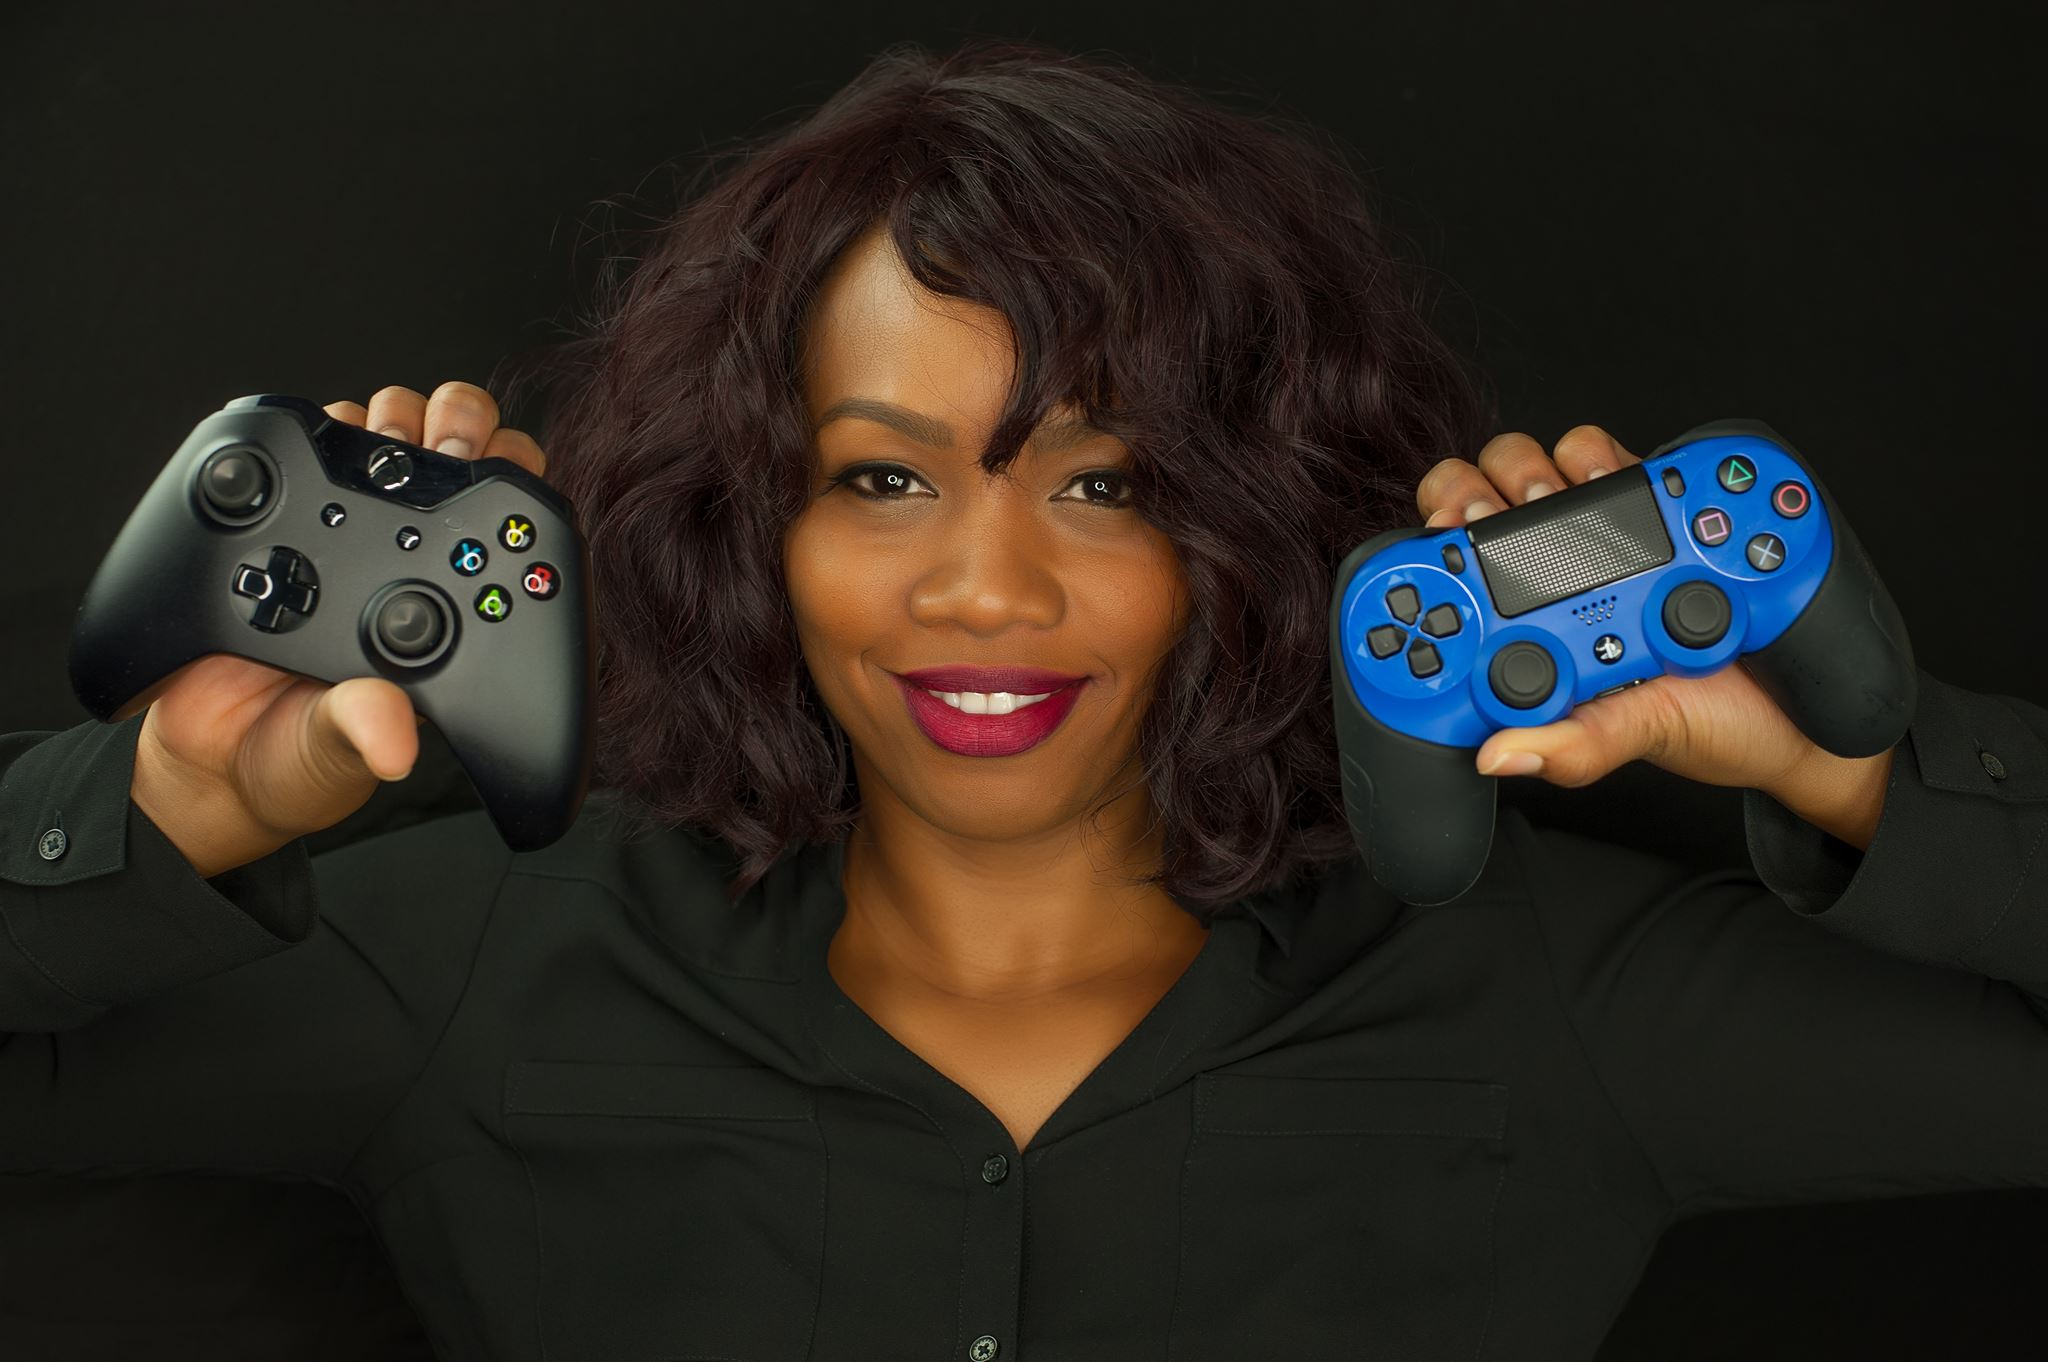 Week 5: Keisha Howard, 32, Founder of Sugar Gamers and The BlazeBreakers. Click for full interview.